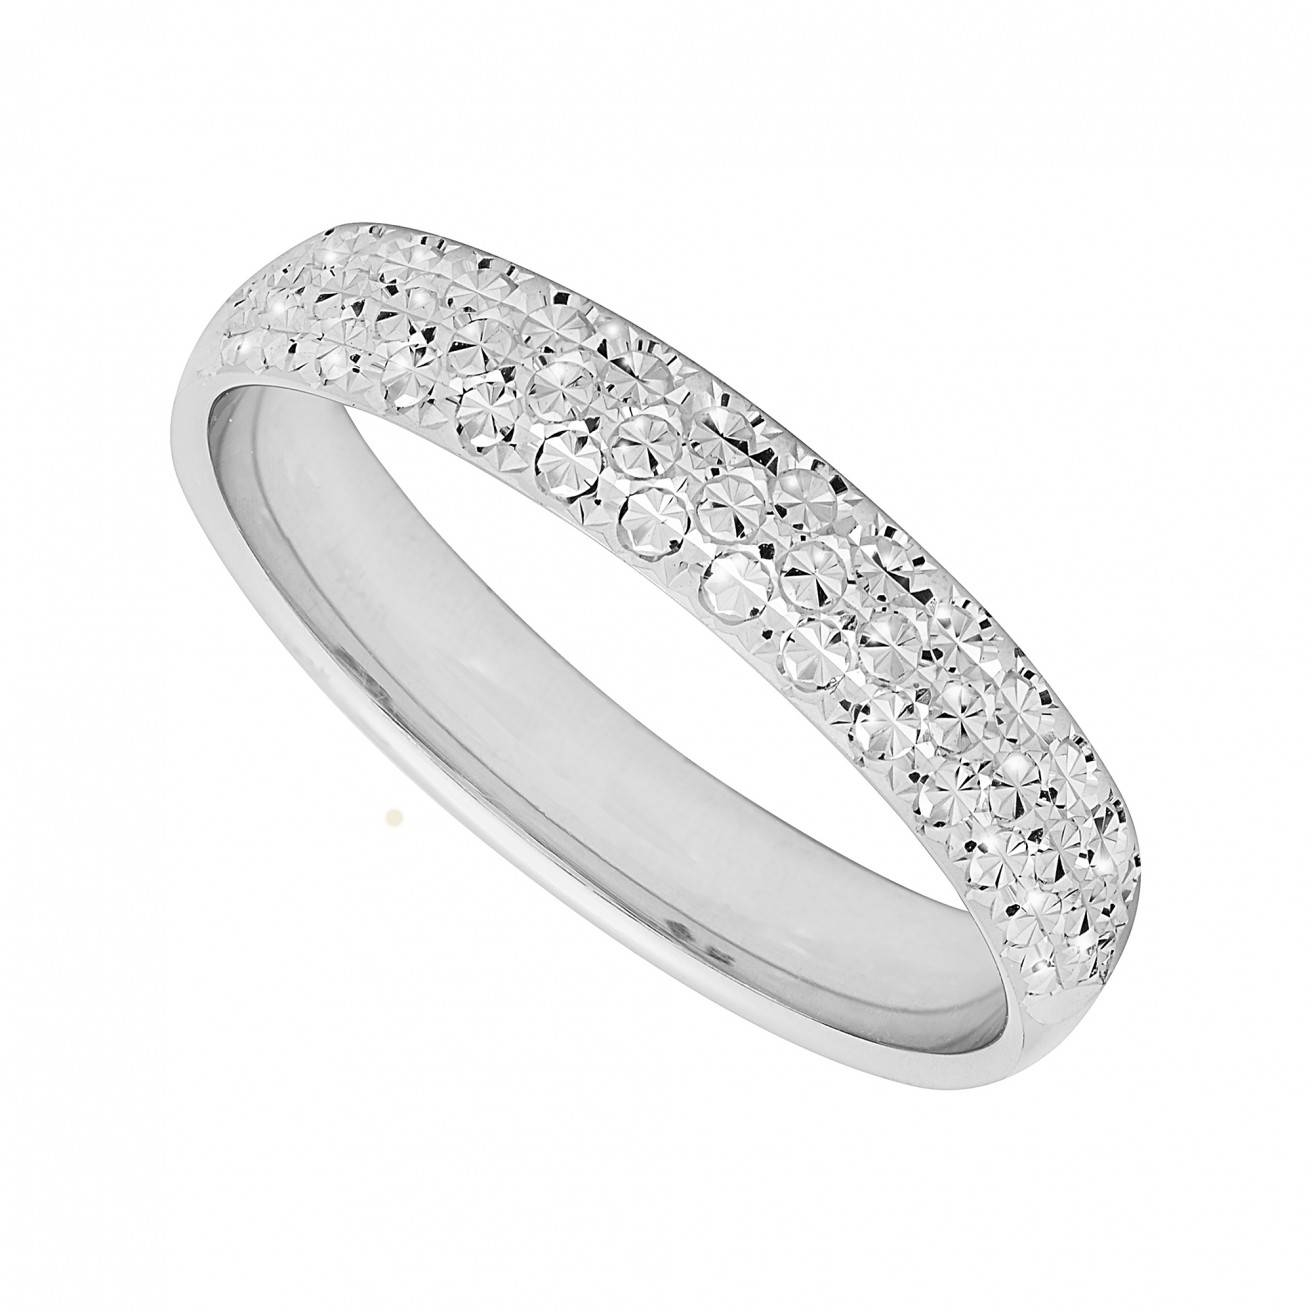 Buy White Gold Wedding Rings Online – Fraser Hart Throughout Wedding Rings With Diamond Band (View 5 of 15)